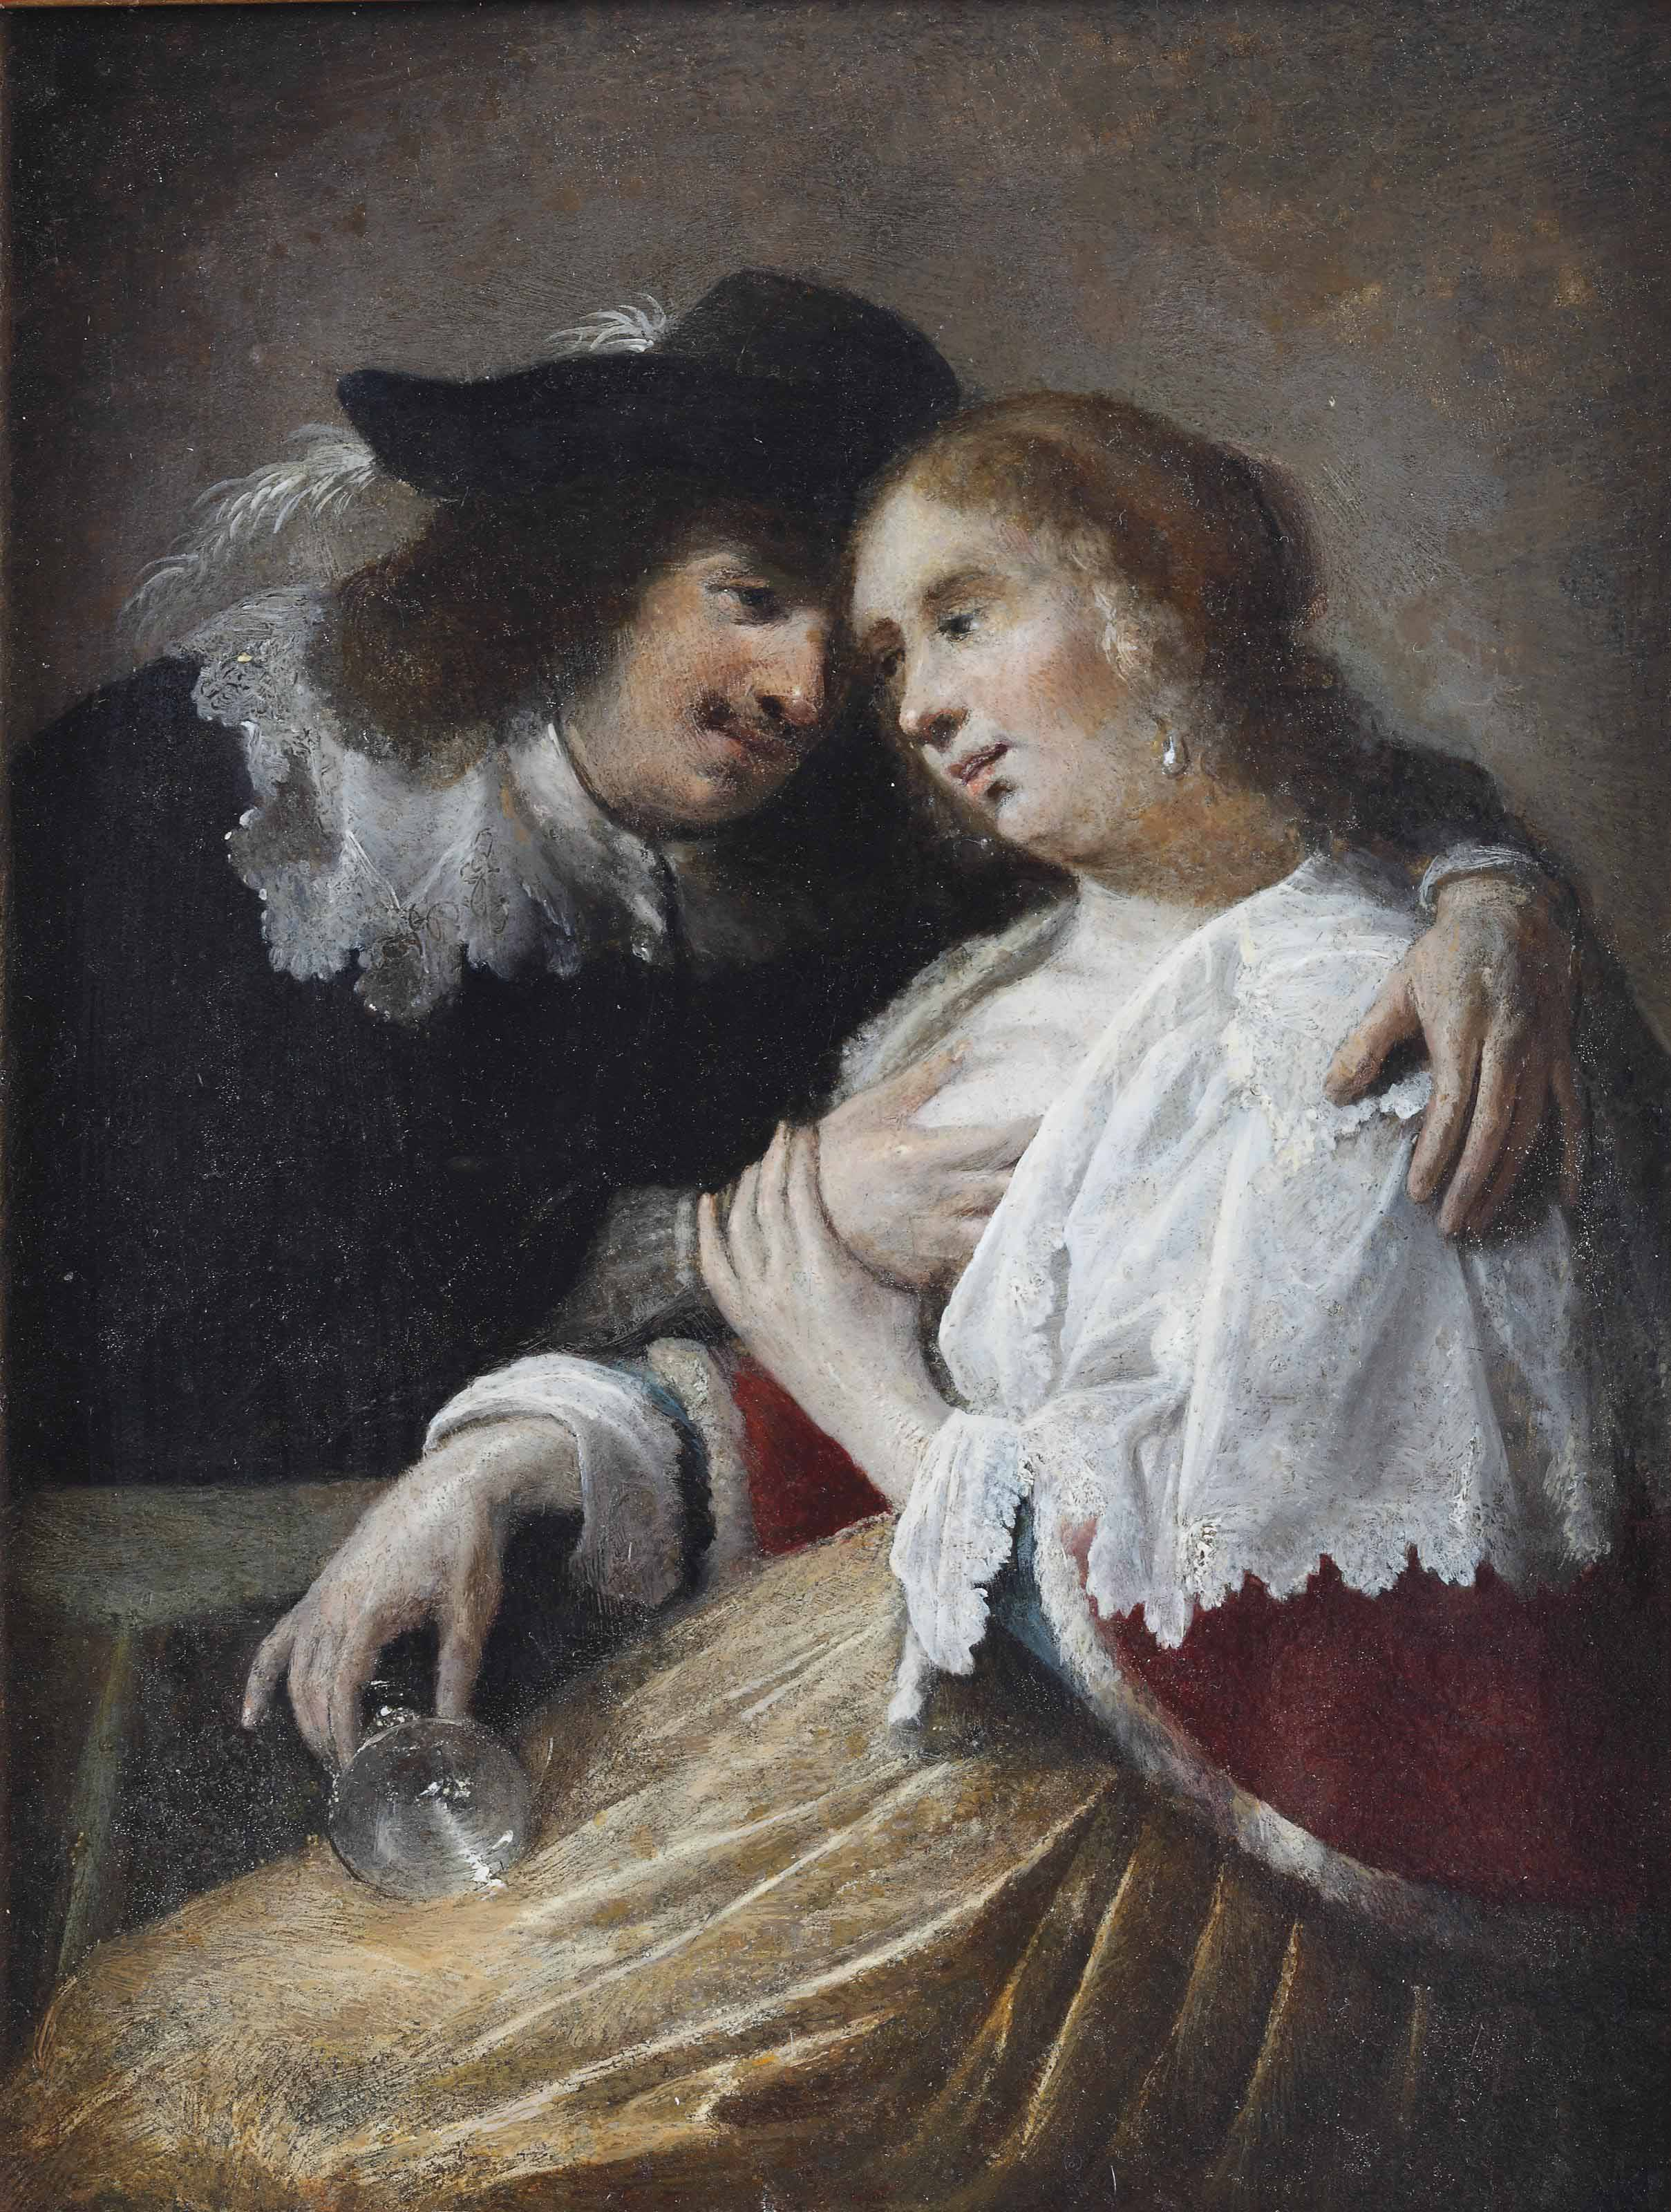 The Effects of Intemperance; a man embracing a drunken woman